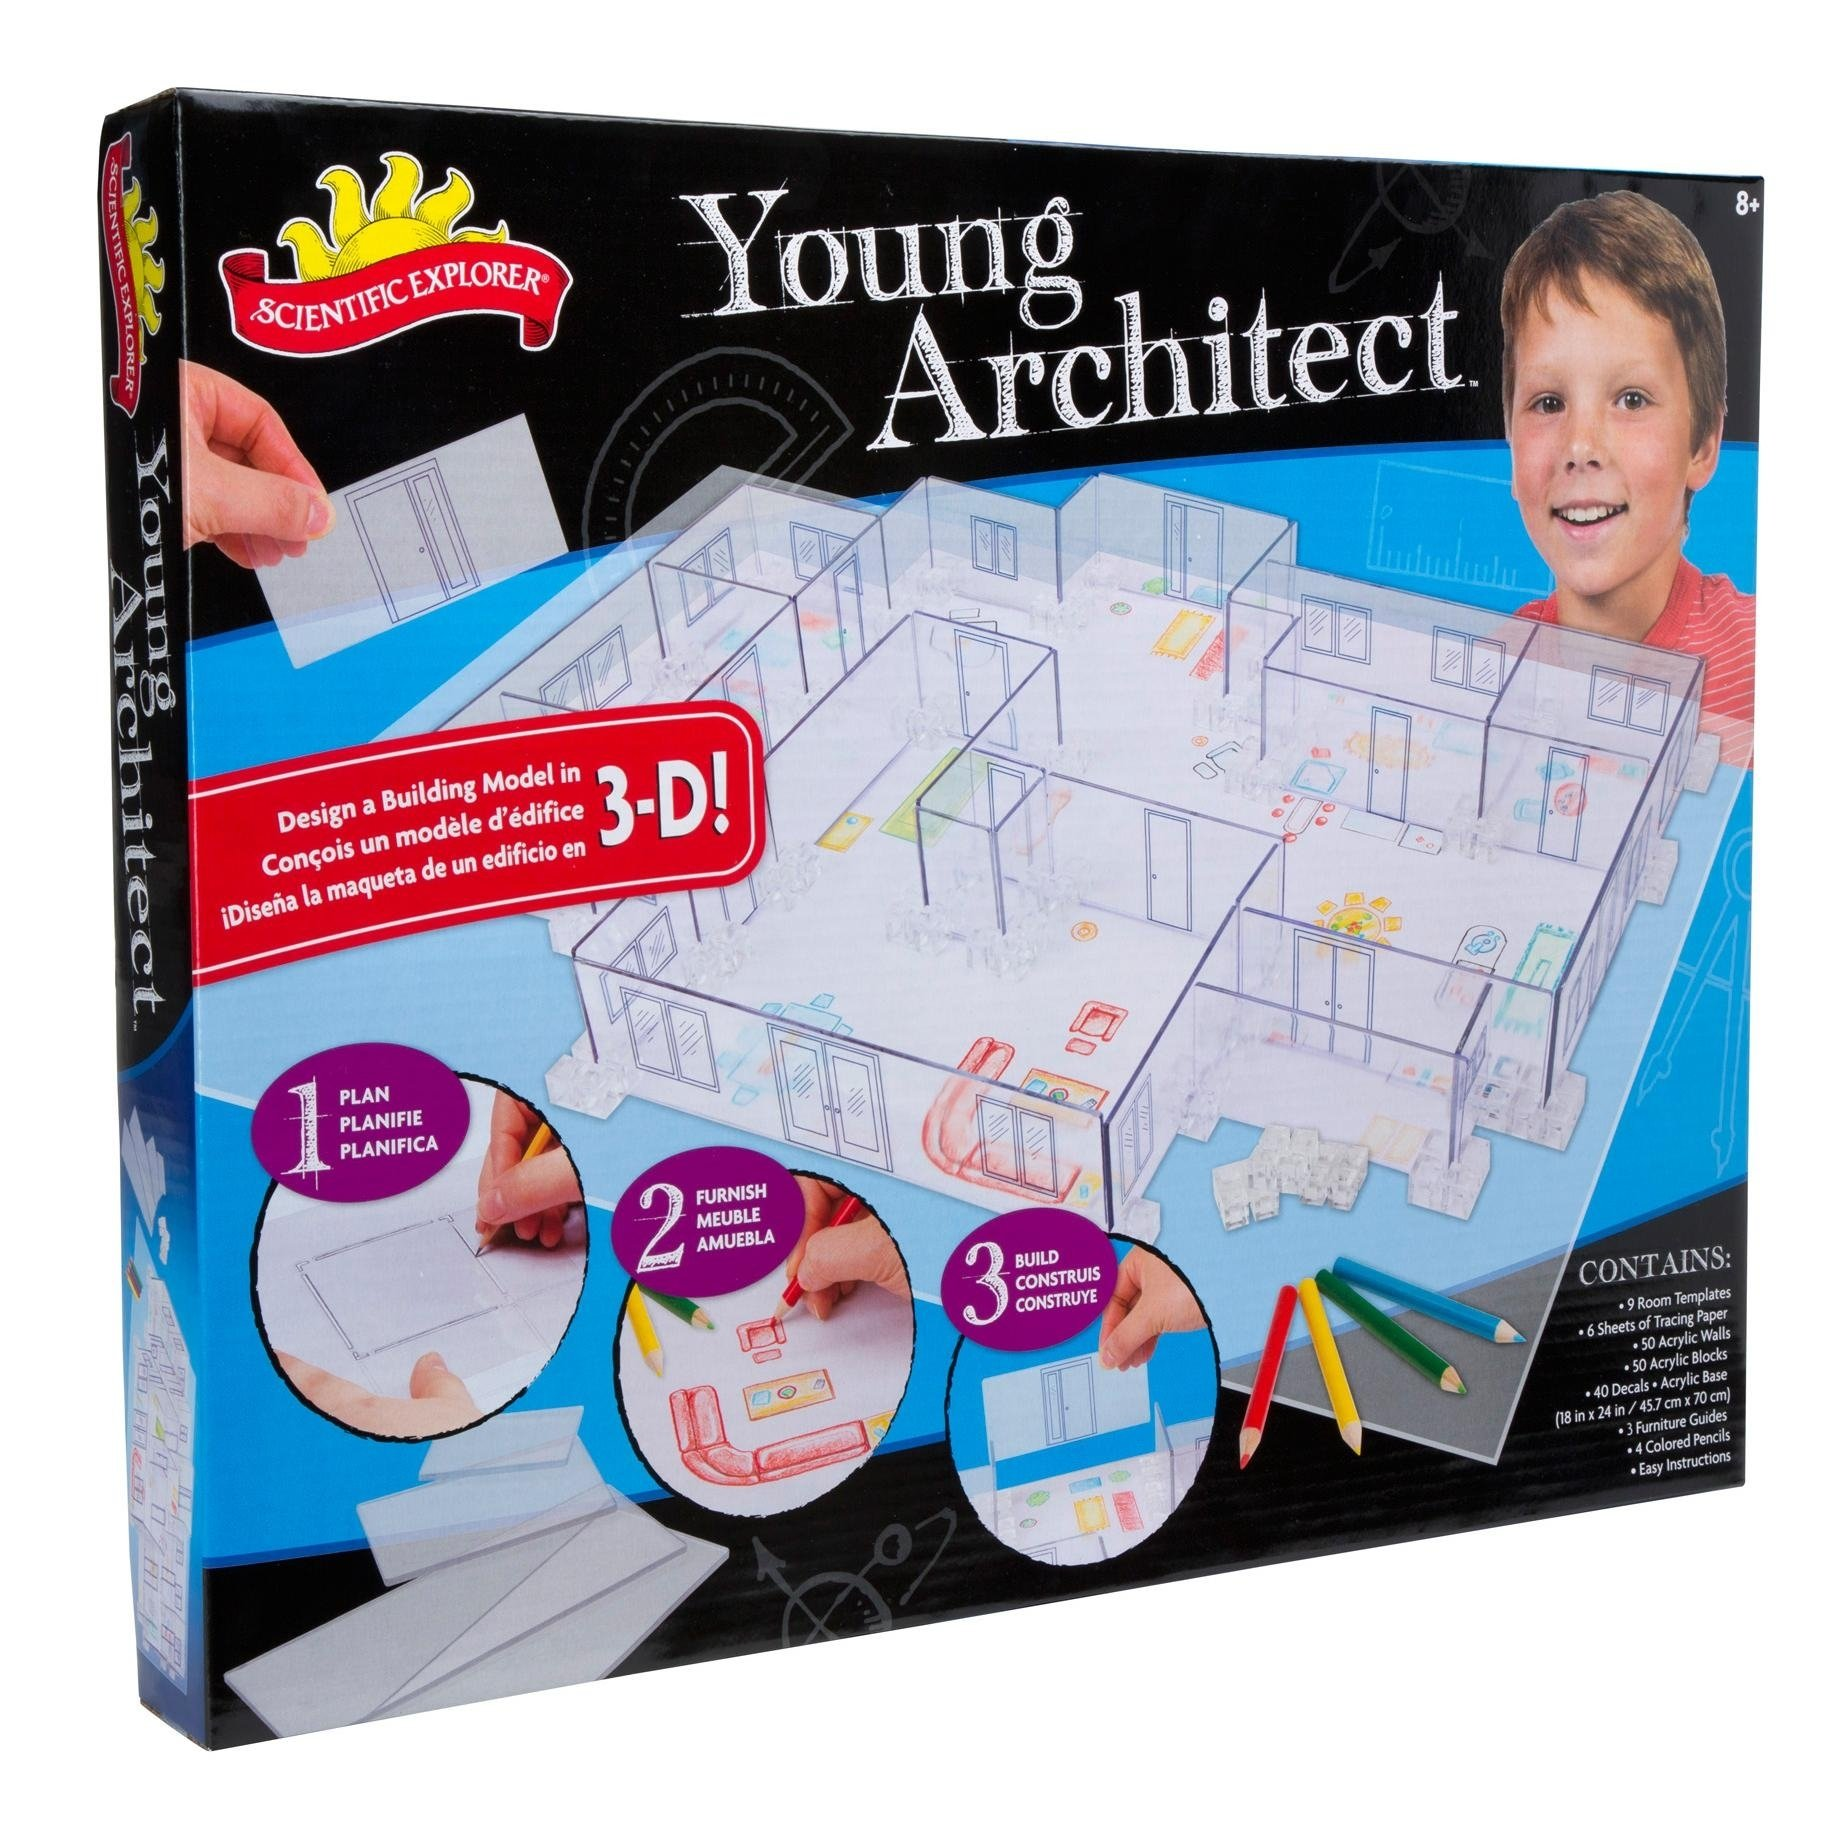 10 Nice Gift Ideas For 12 Year Old Daughter young architect science toys for kidsscientific explorer 2020